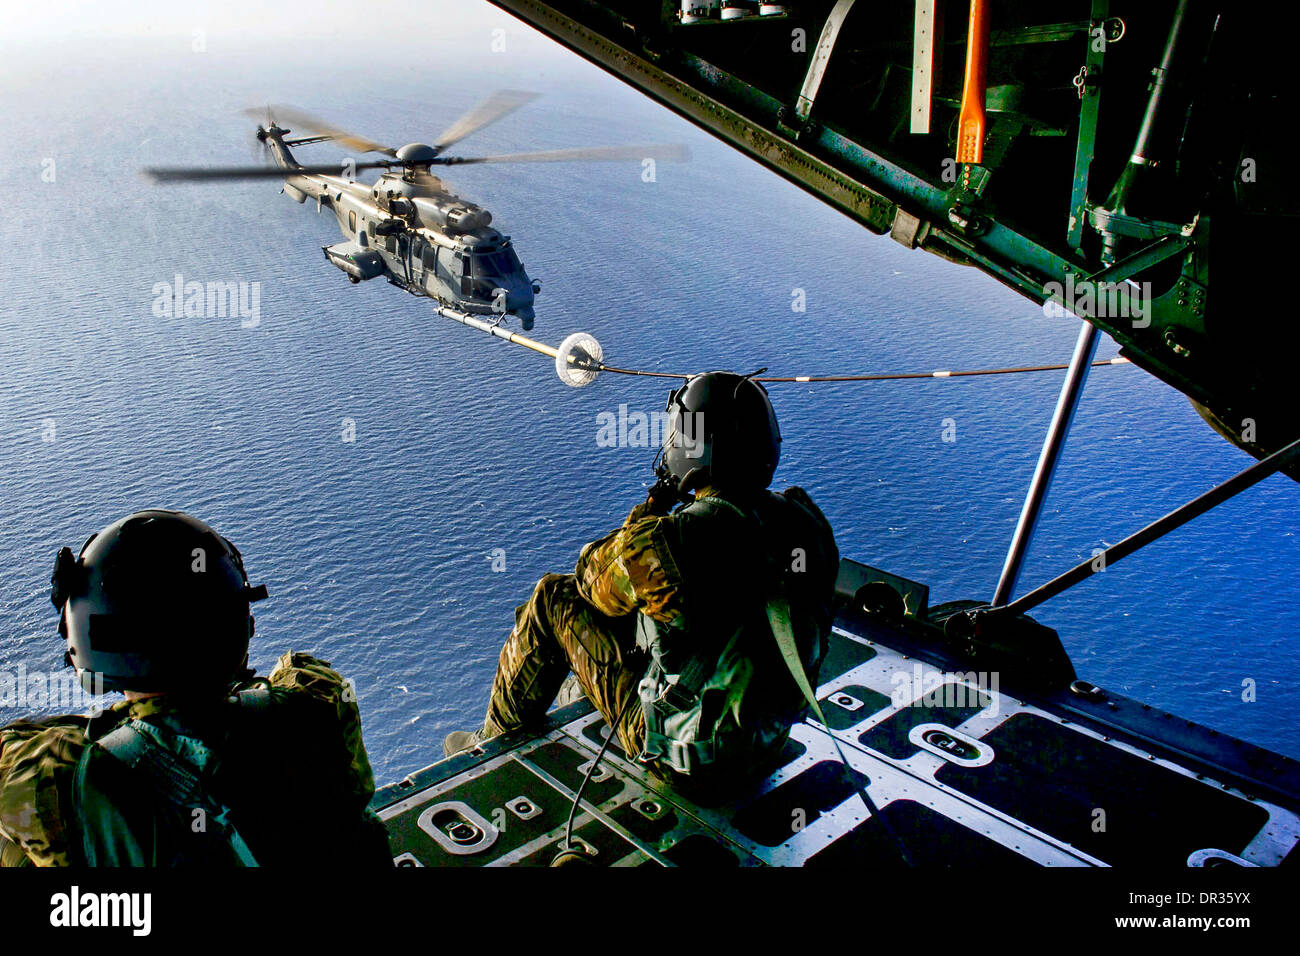 Loadmasters watch as a French air force Eurocopter practices aerial refueling - Stock Image